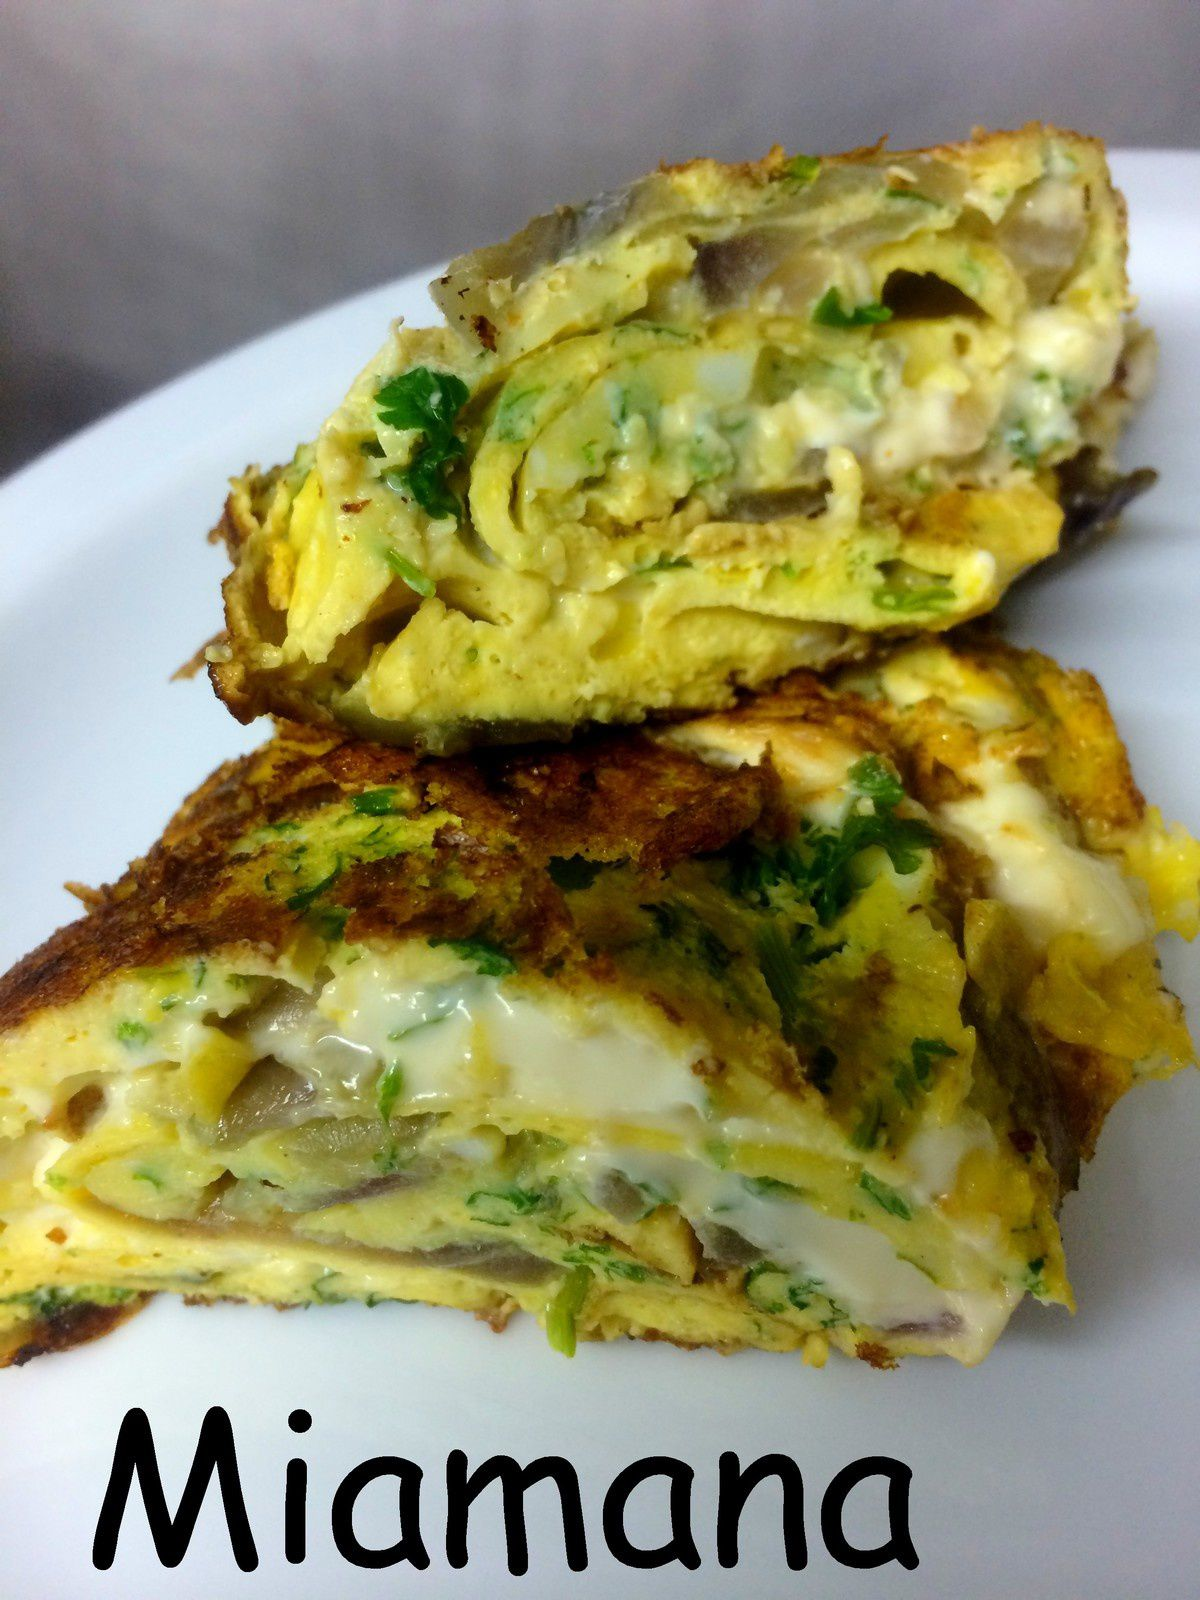 Omelette roulée aux herbes et fromage